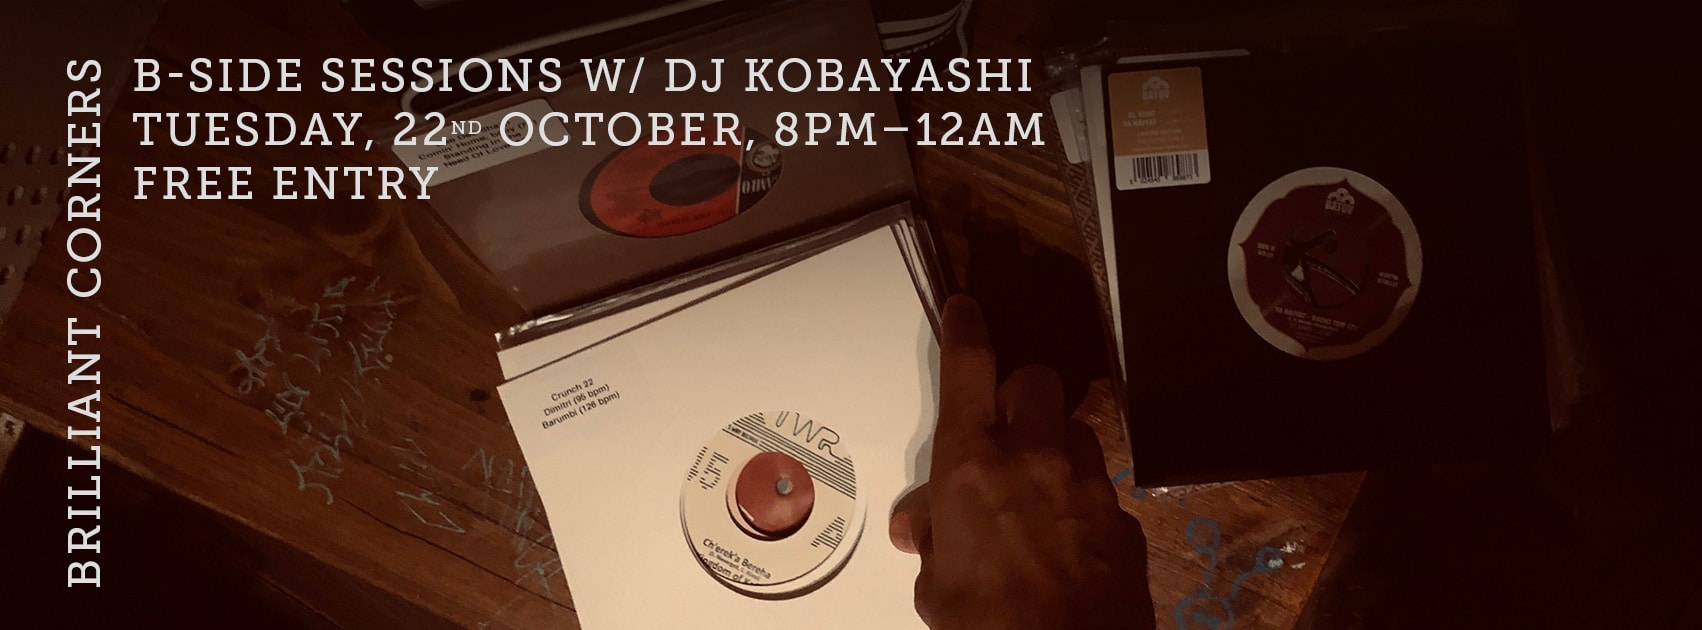 B-Side Sessions DJ Kobayashi Brilliant Corners